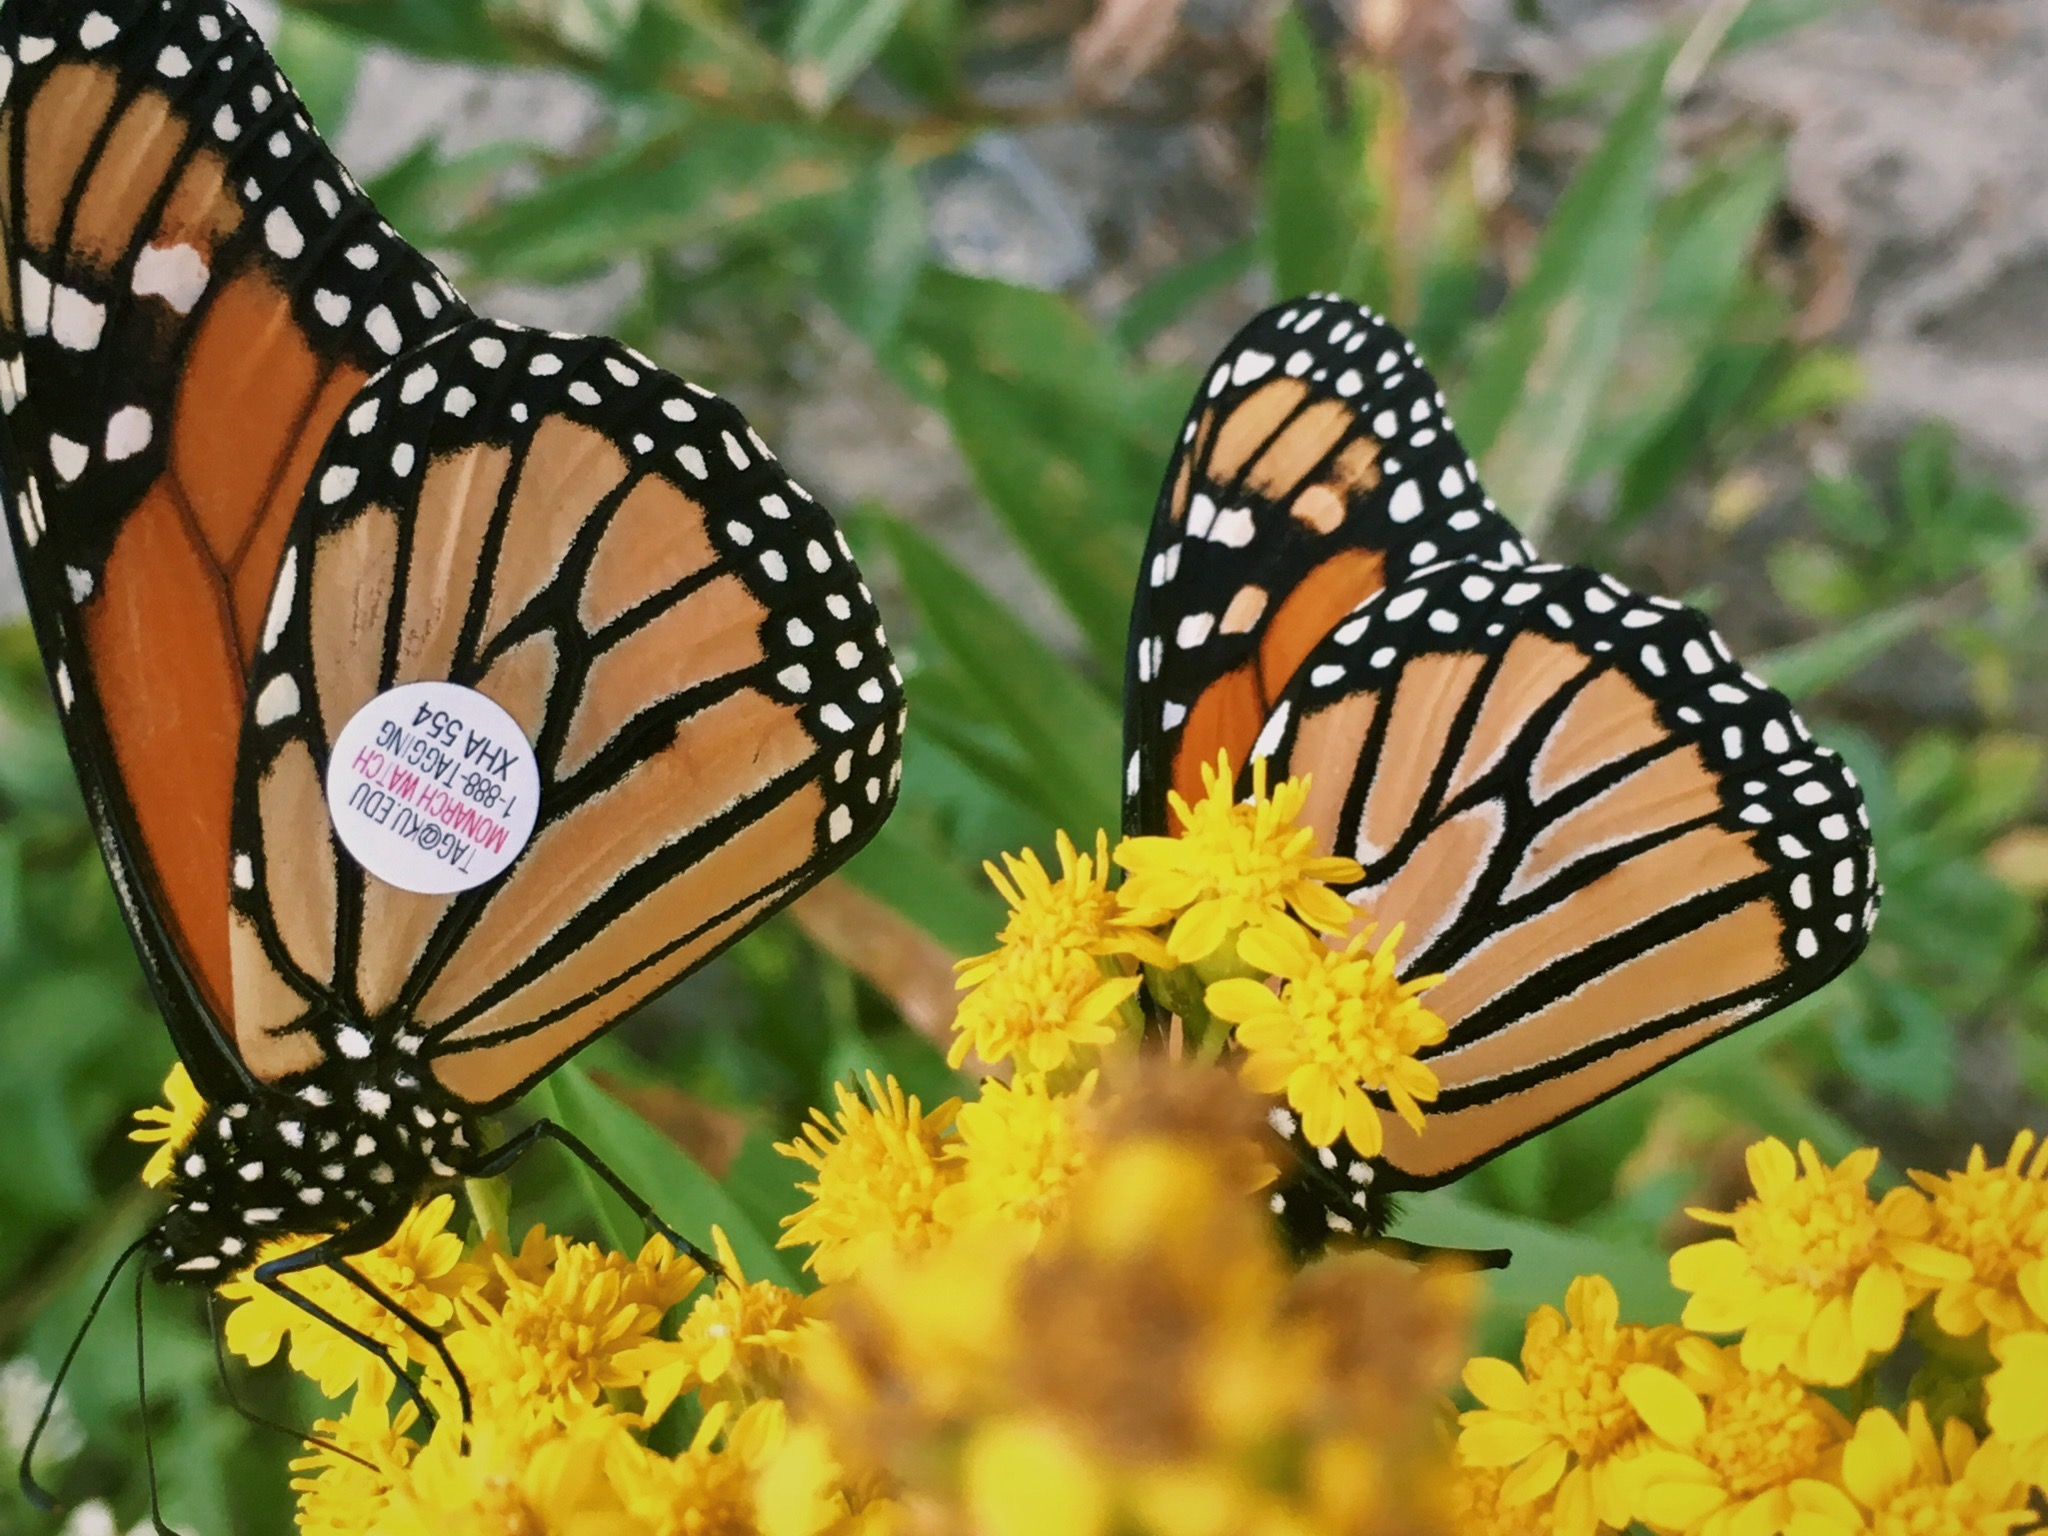 Our Land Management Director, Anna Corichi, captured this photo of a tagged monarch on her quick trip to the coast a few weeks ago.